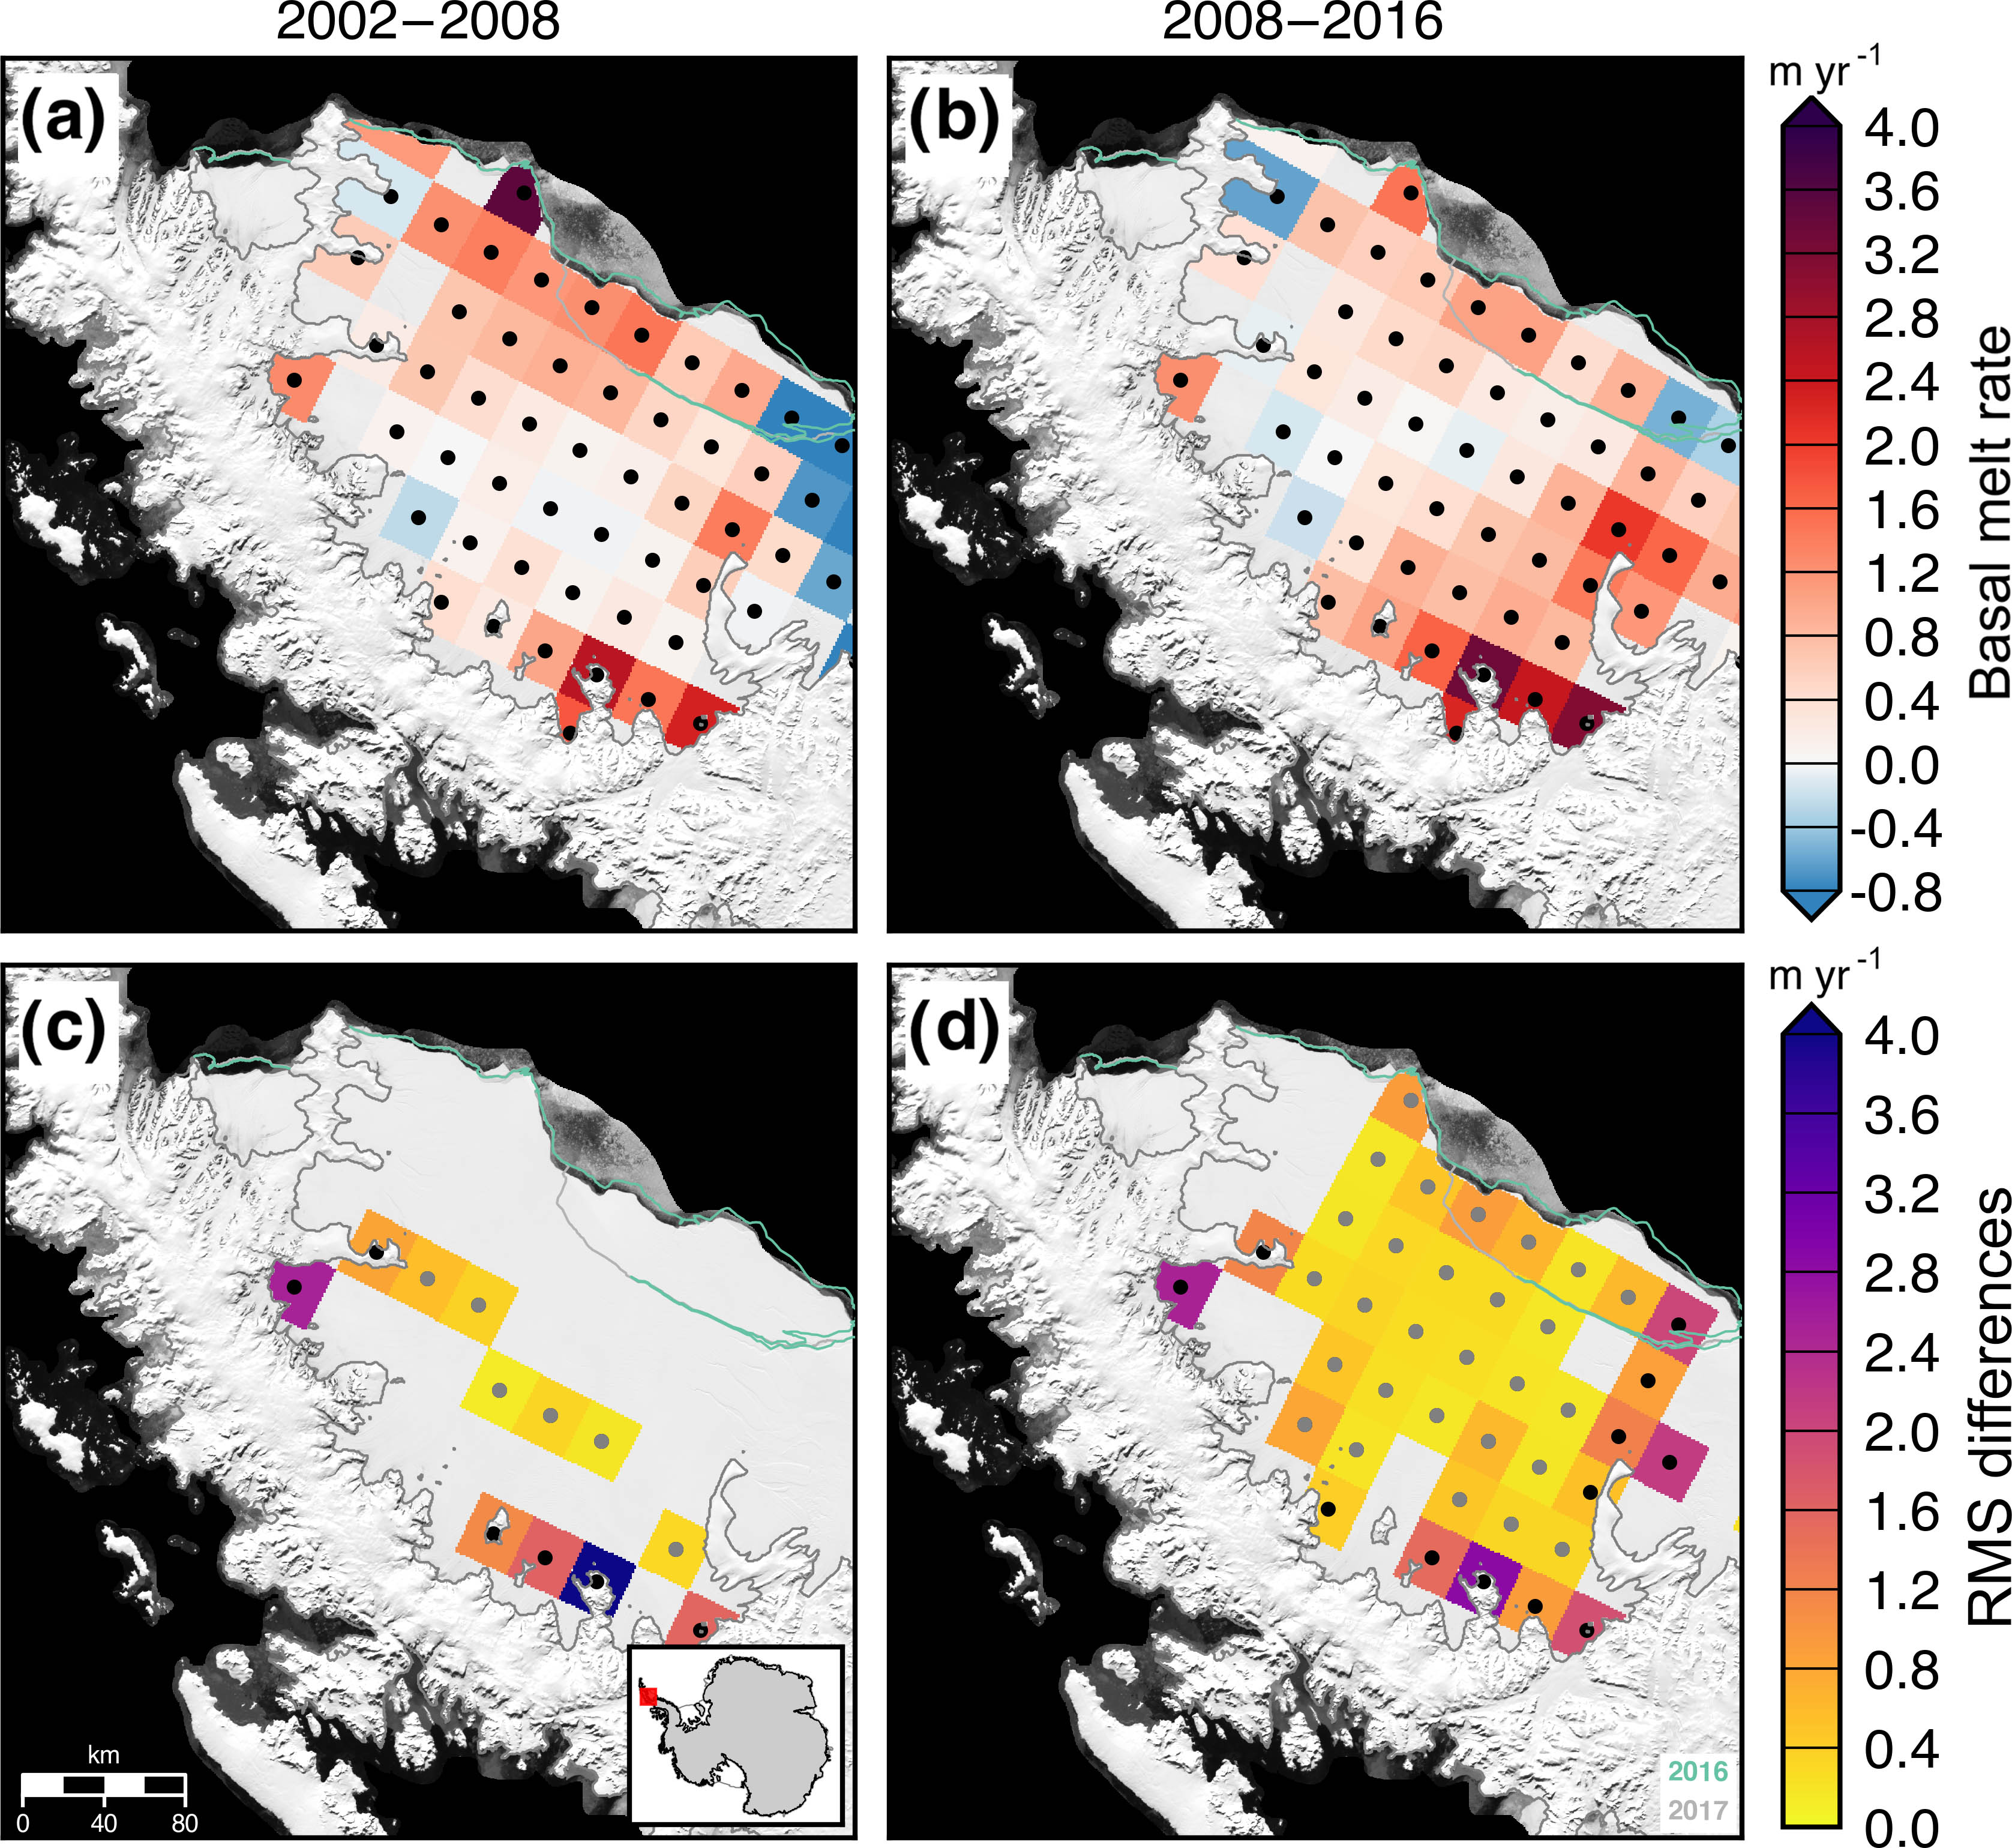 TC - Antarctic ice shelf thickness change from multimission lidar